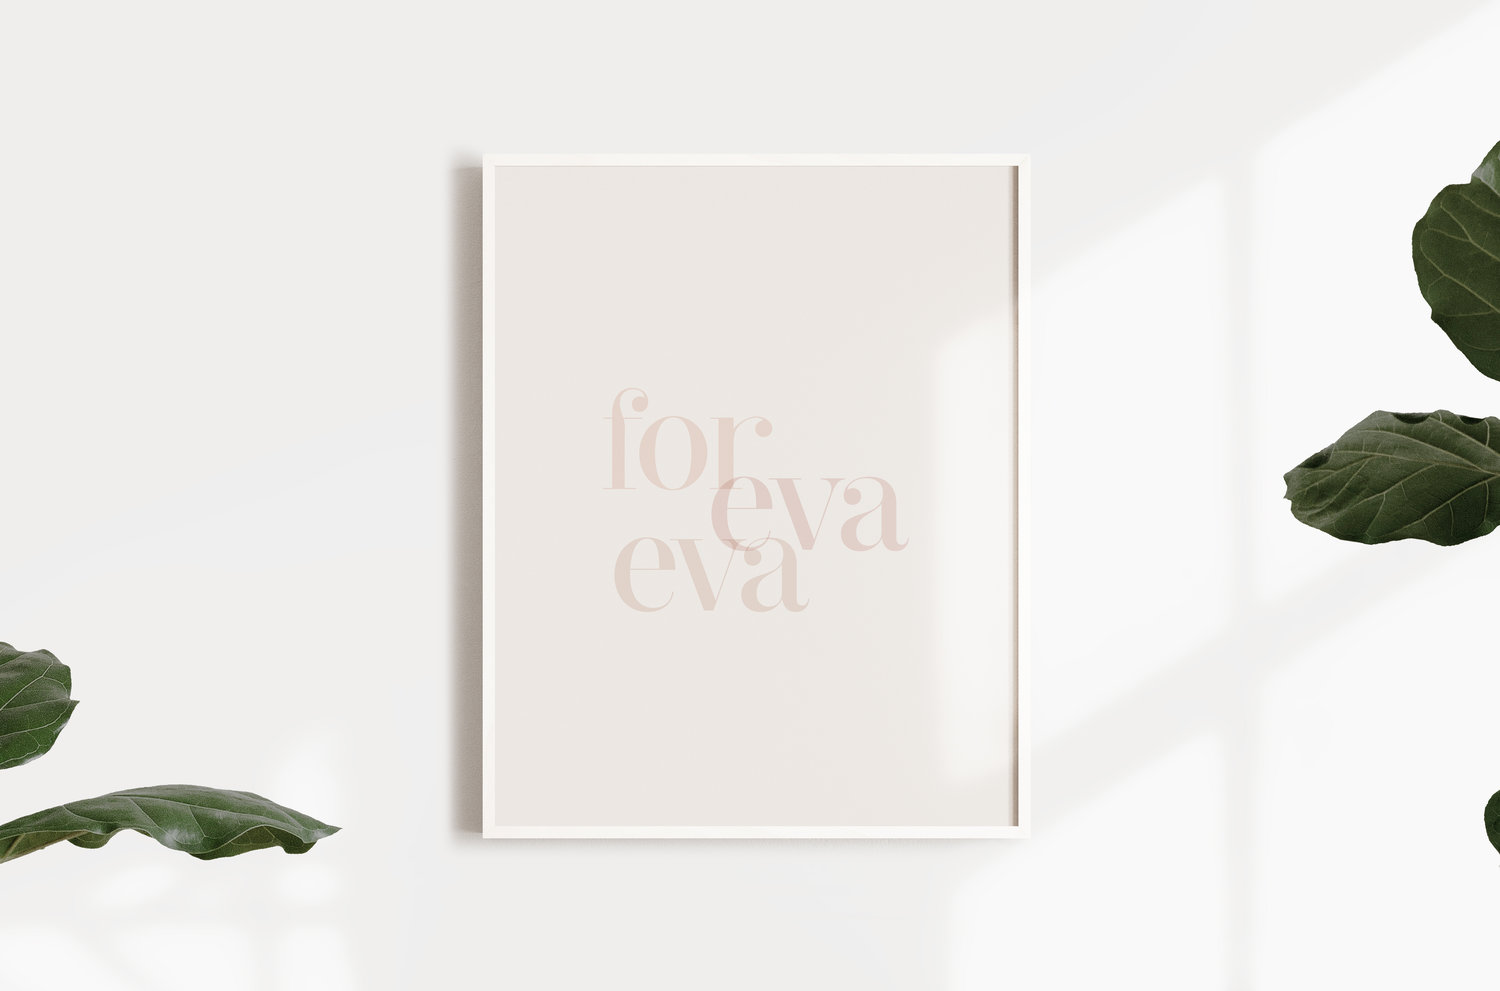 bride gift guide swell press foreva print